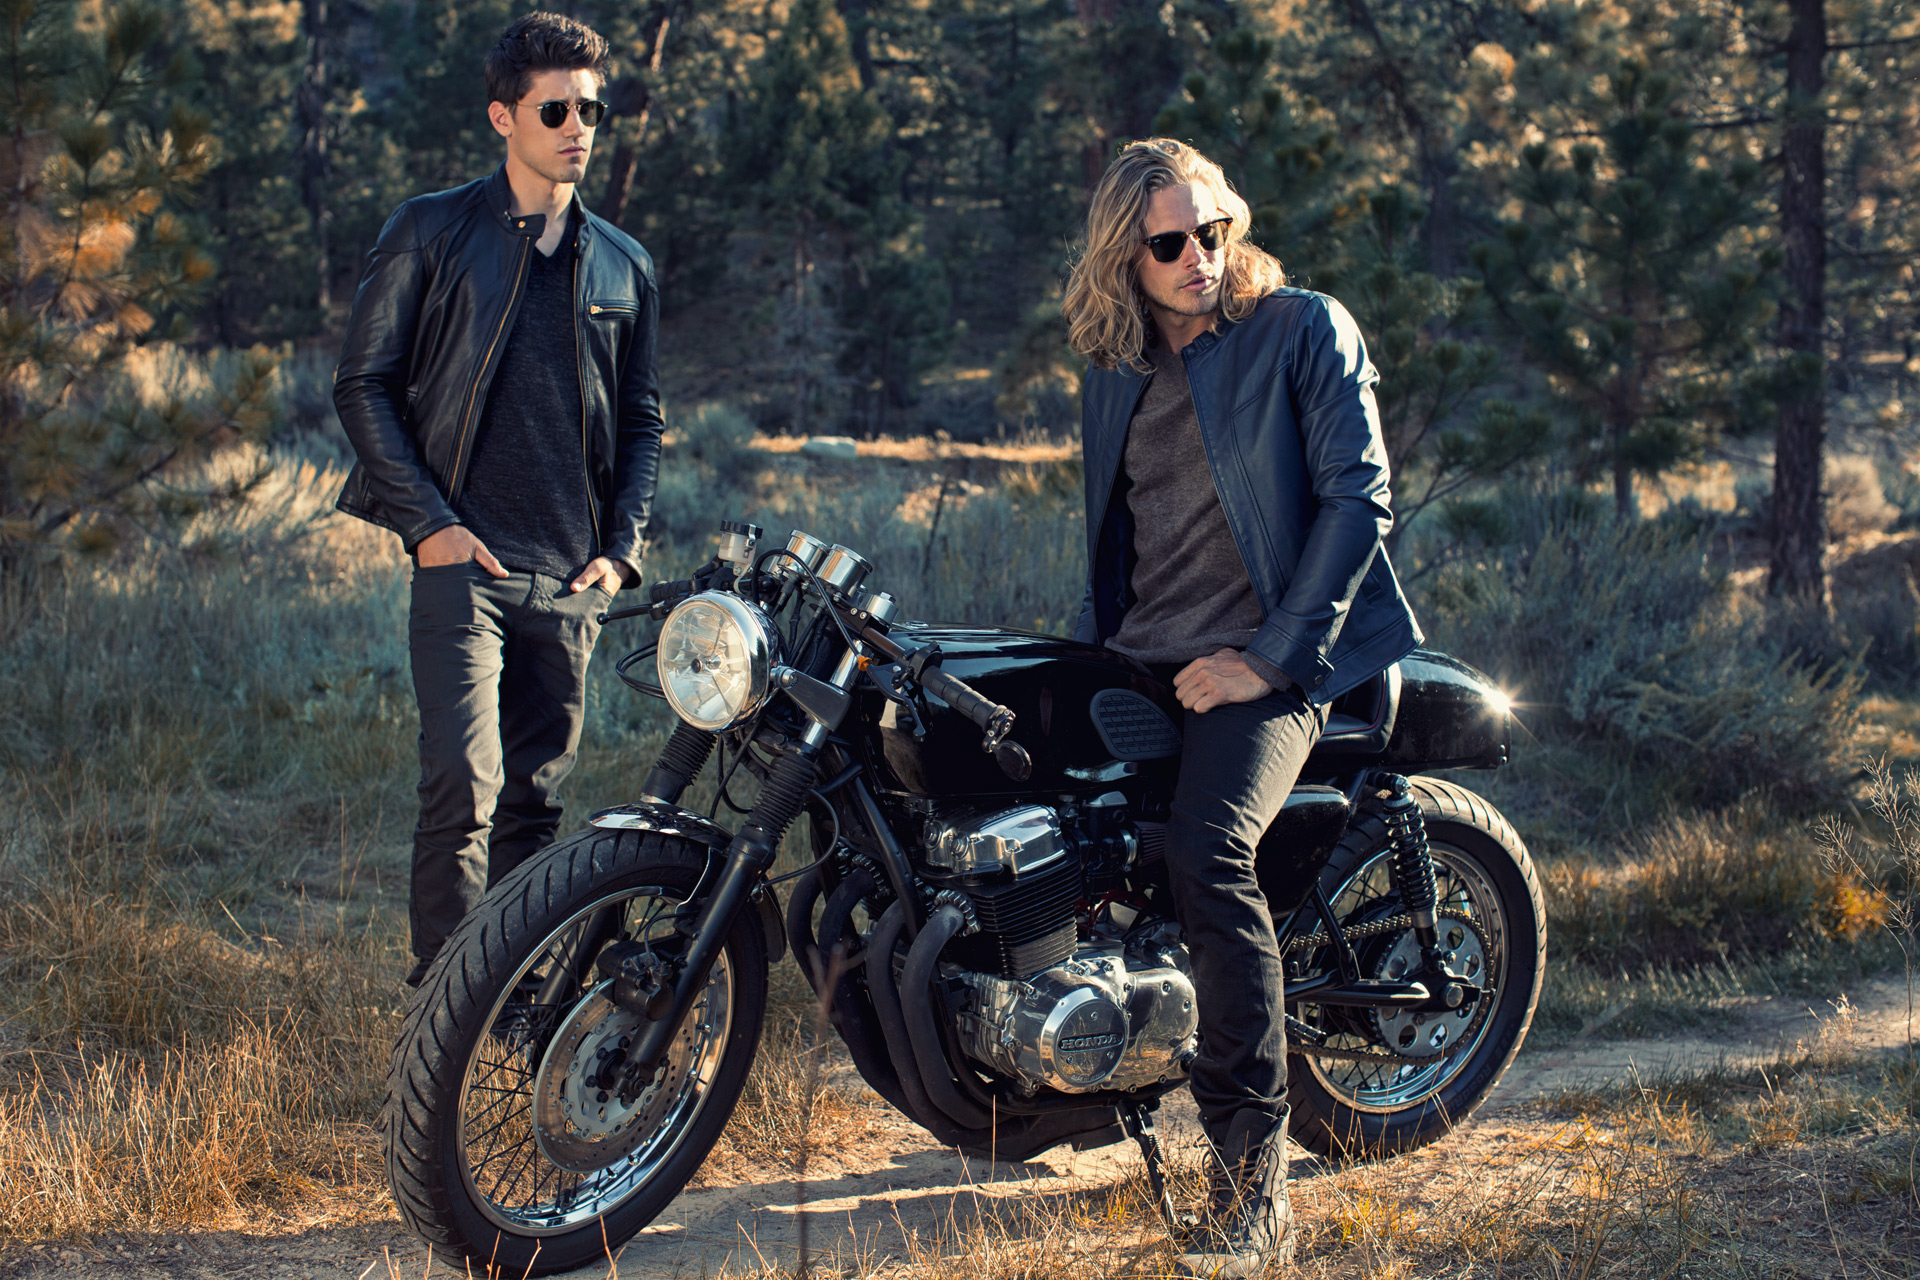 Mark DeLong - Lifestyle Photography - Man sitting on motorcycle wearing sunglasses and a man standing by the motorcycle wearing a leather jacket